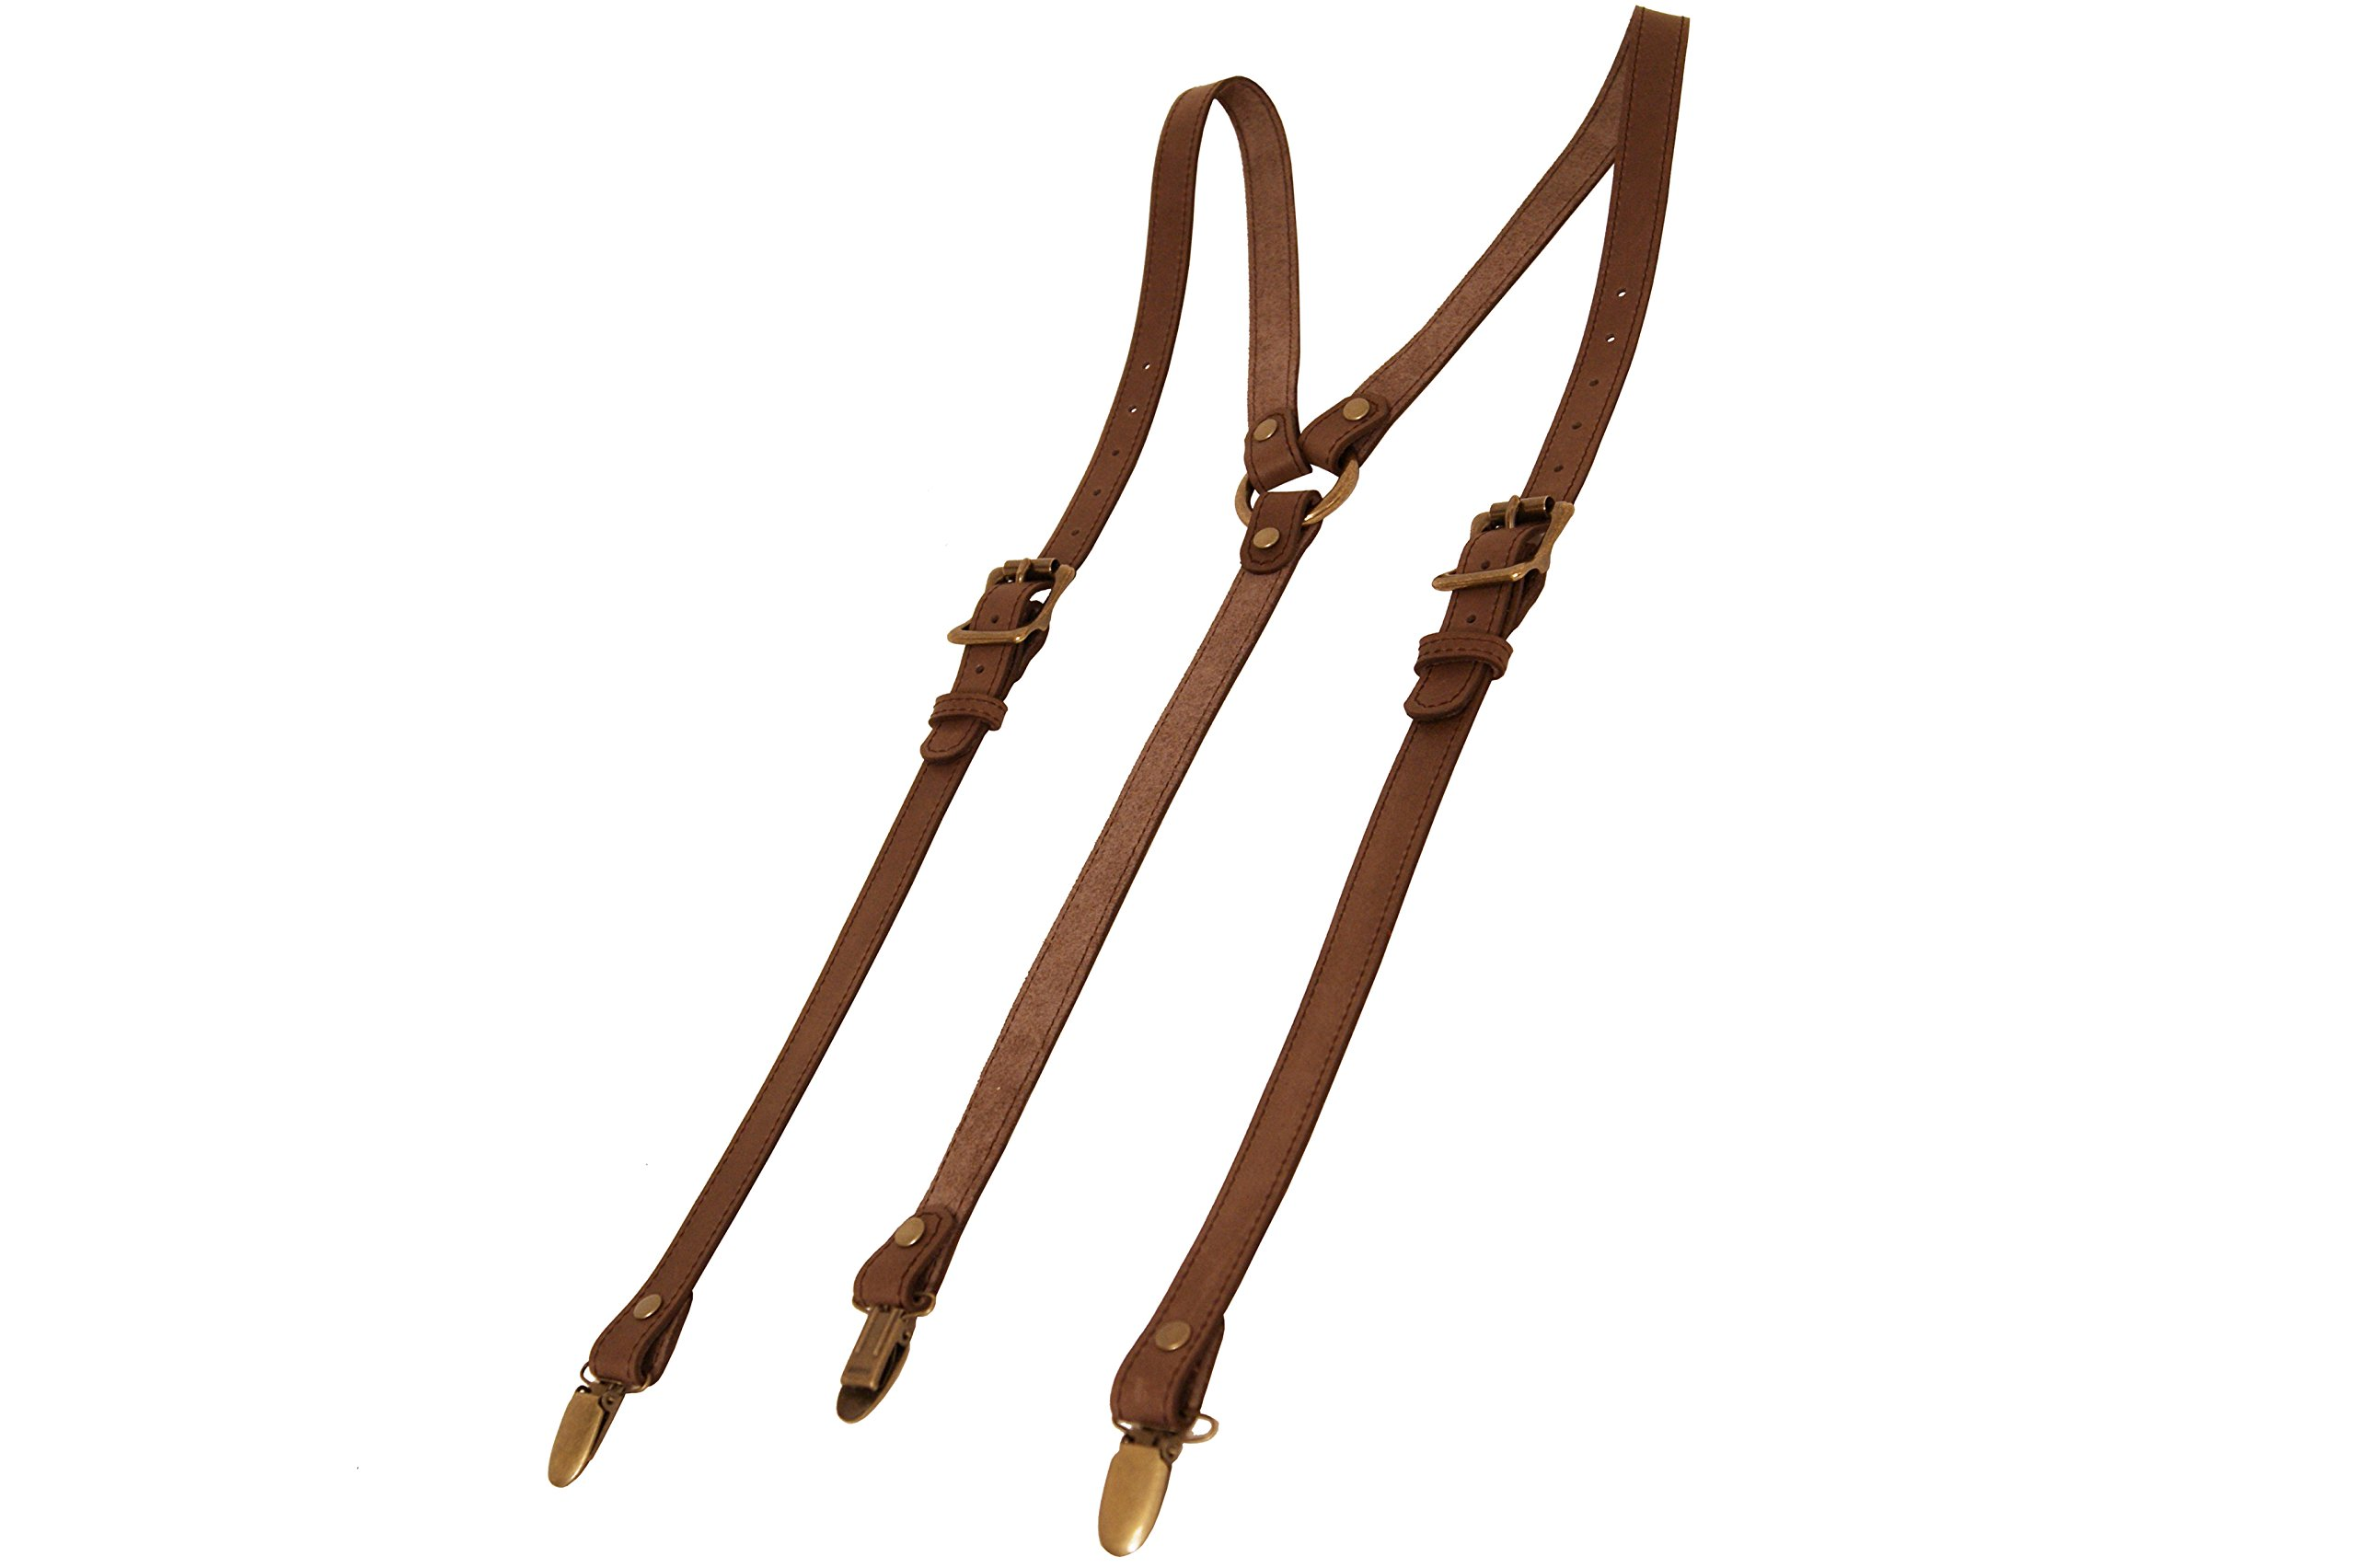 Project Transaction Men's Leather Suspenders M/L Dark Brown/Antique Suspender Clips